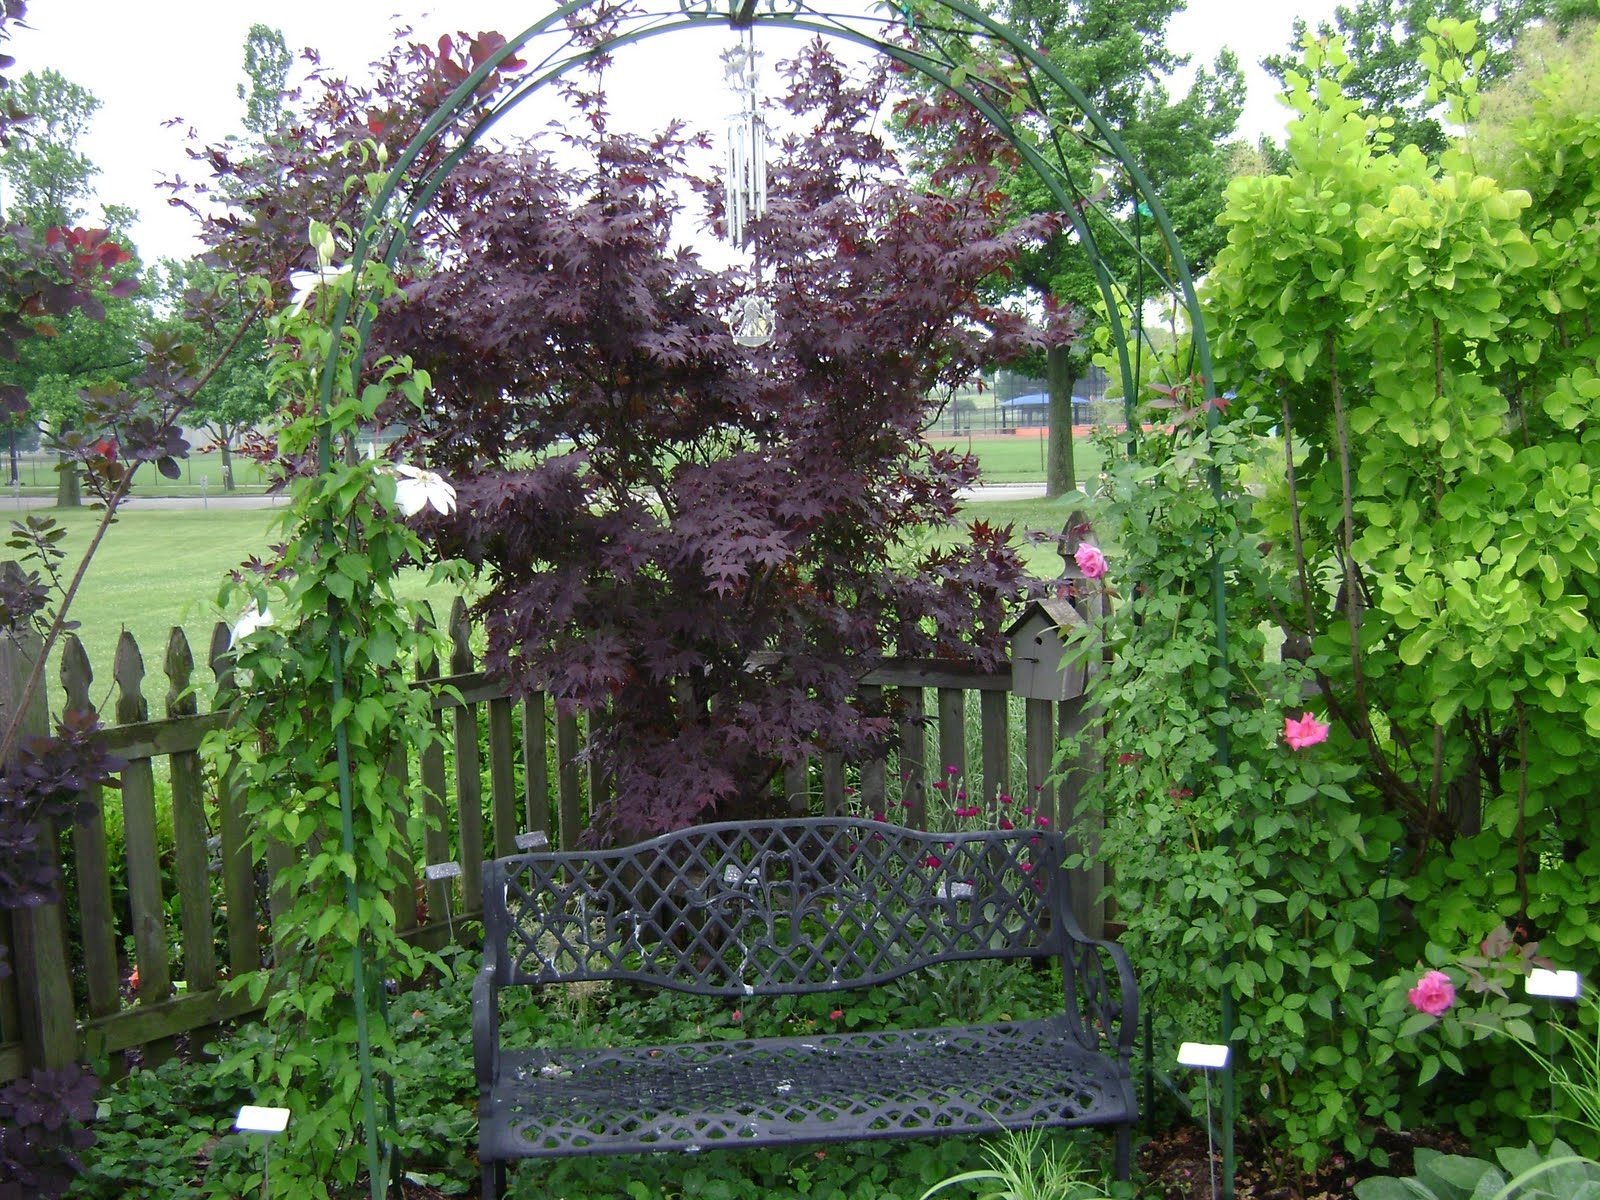 Prairie Rose's Garden: Ideas Galore in the Idea Garden